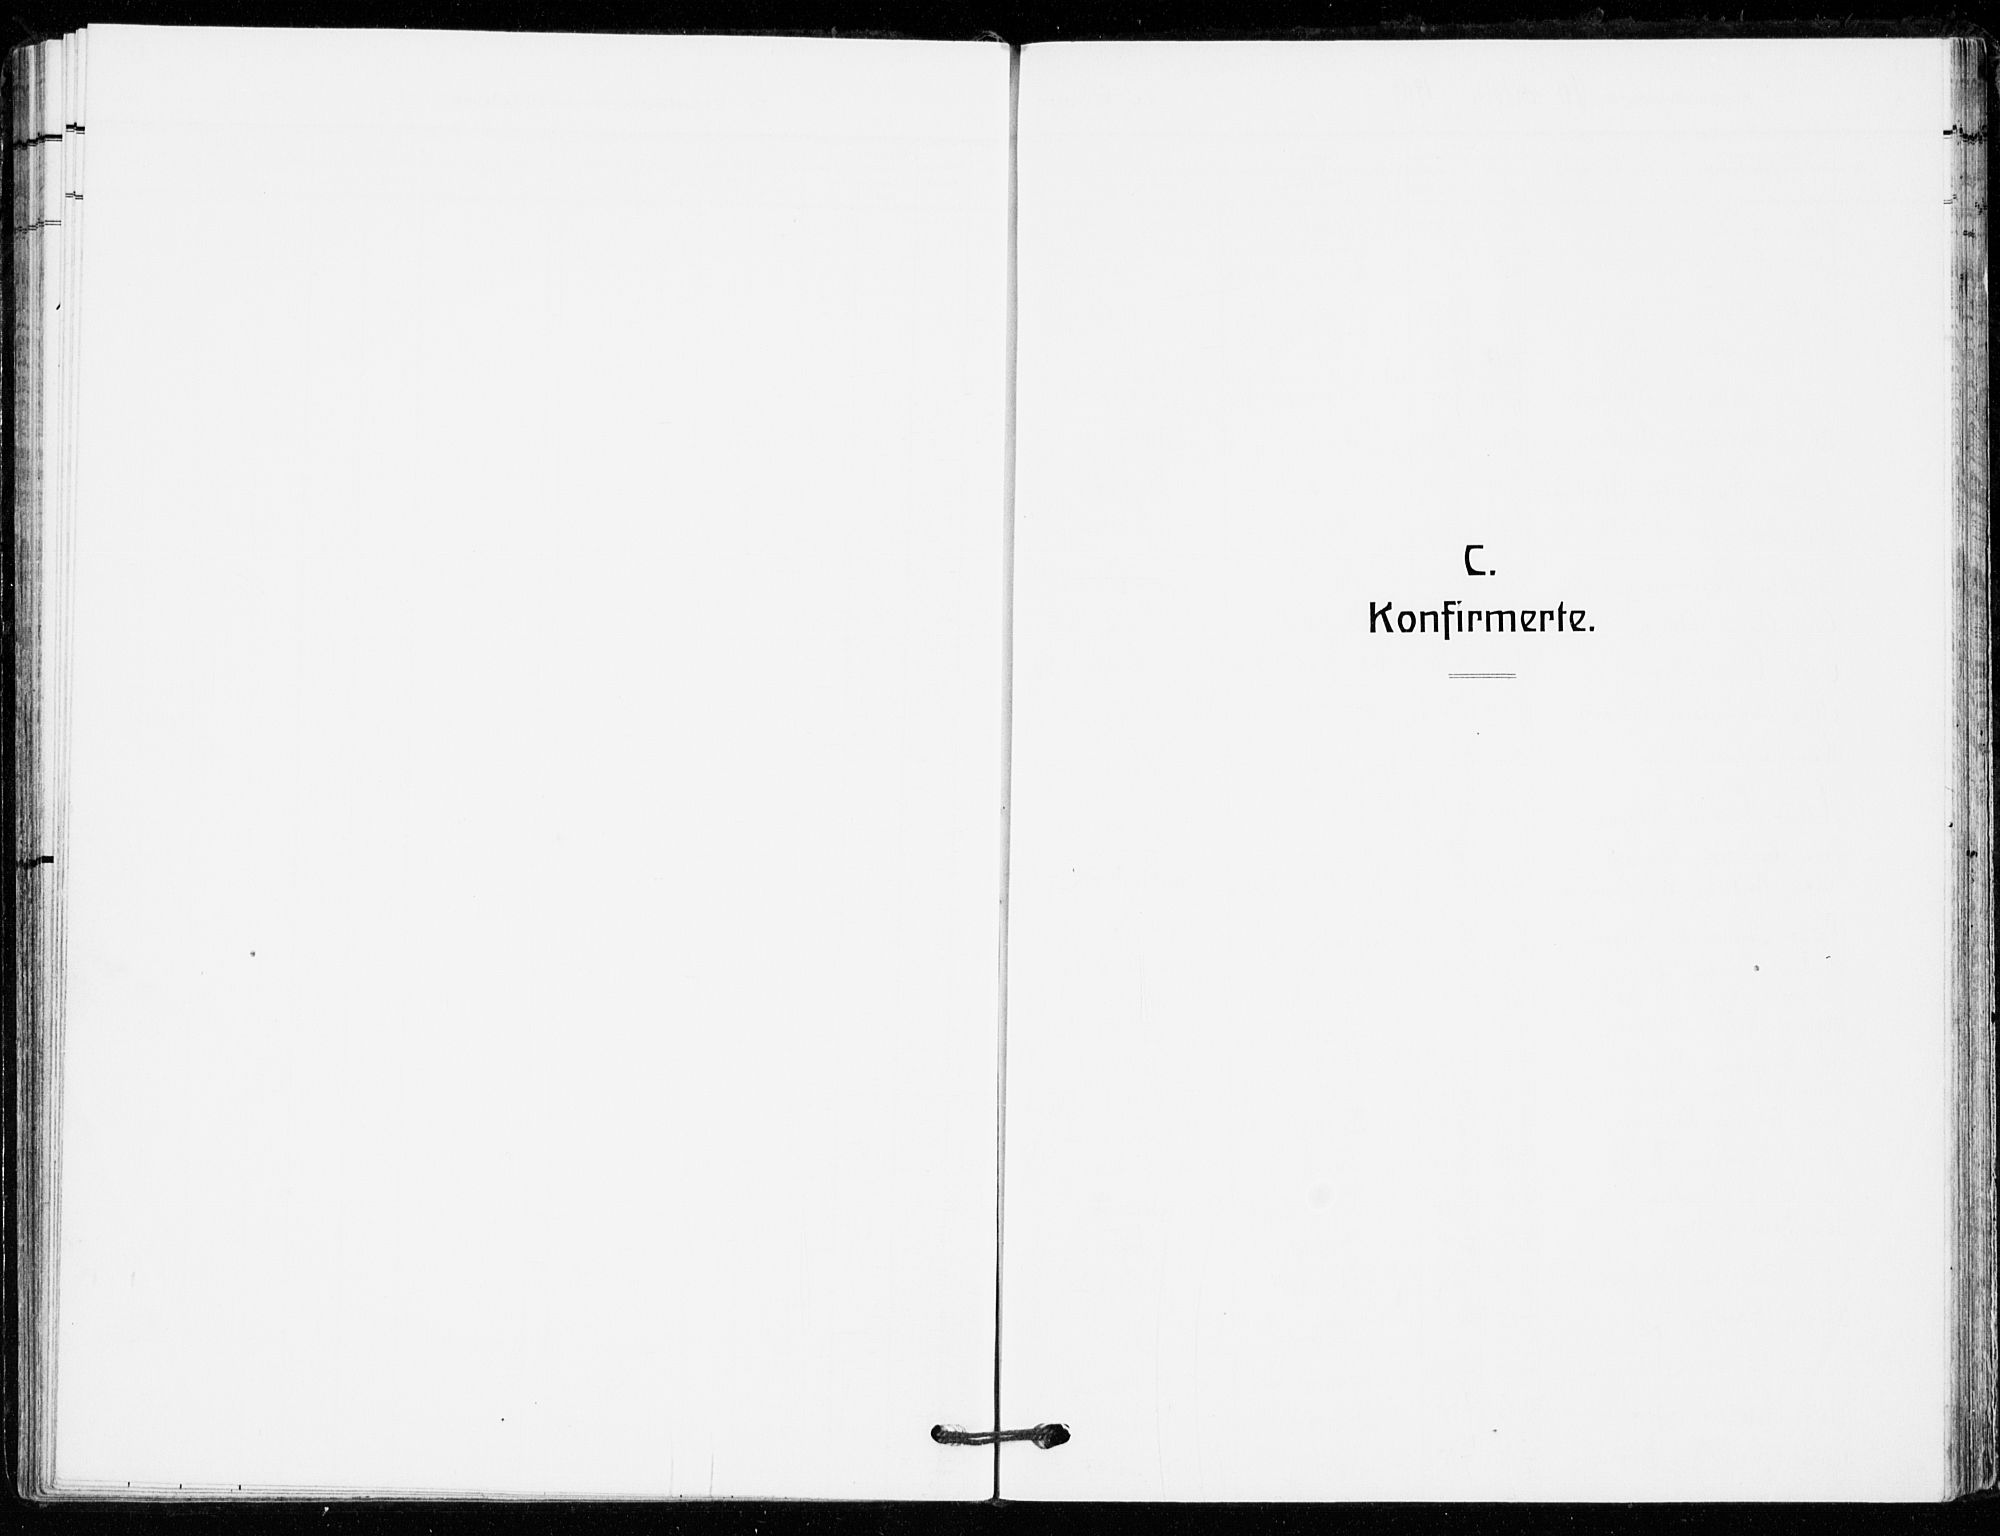 SAKO, Bø kirkebøker, F/Fa/L0013: Parish register (official) no. 13, 1909-1921